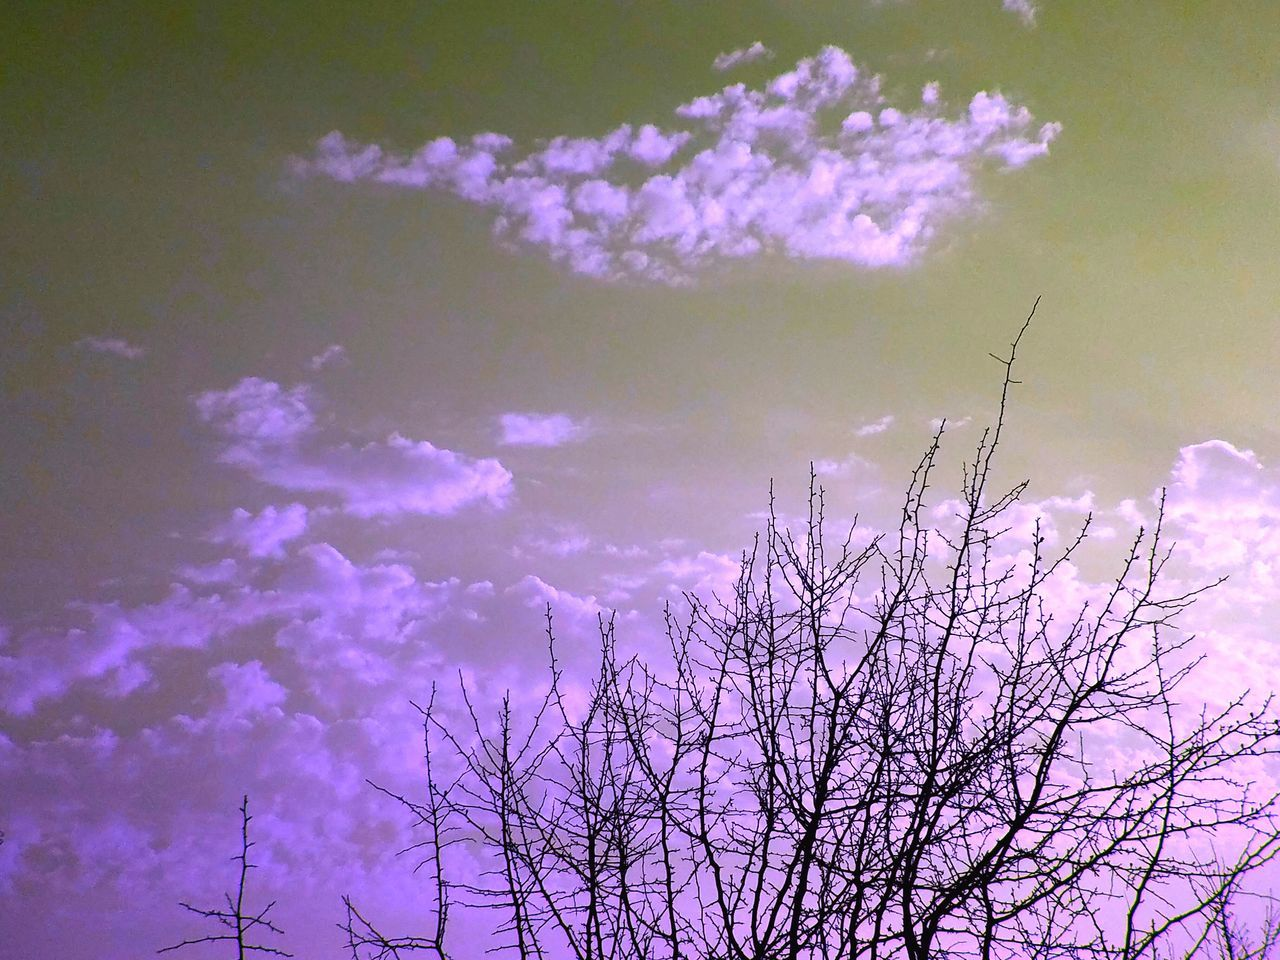 Sky Purple Beauty In Nature Nature Tree No People Flying Outdoors Day EyeEmNewHere Hello World HelloEyeEm Sunbeam Tranquil Scene Cloudscape Dramatic Sky Sunlight Tranquility Low Angle View Scenics Nature Beauty In Nature Sunset